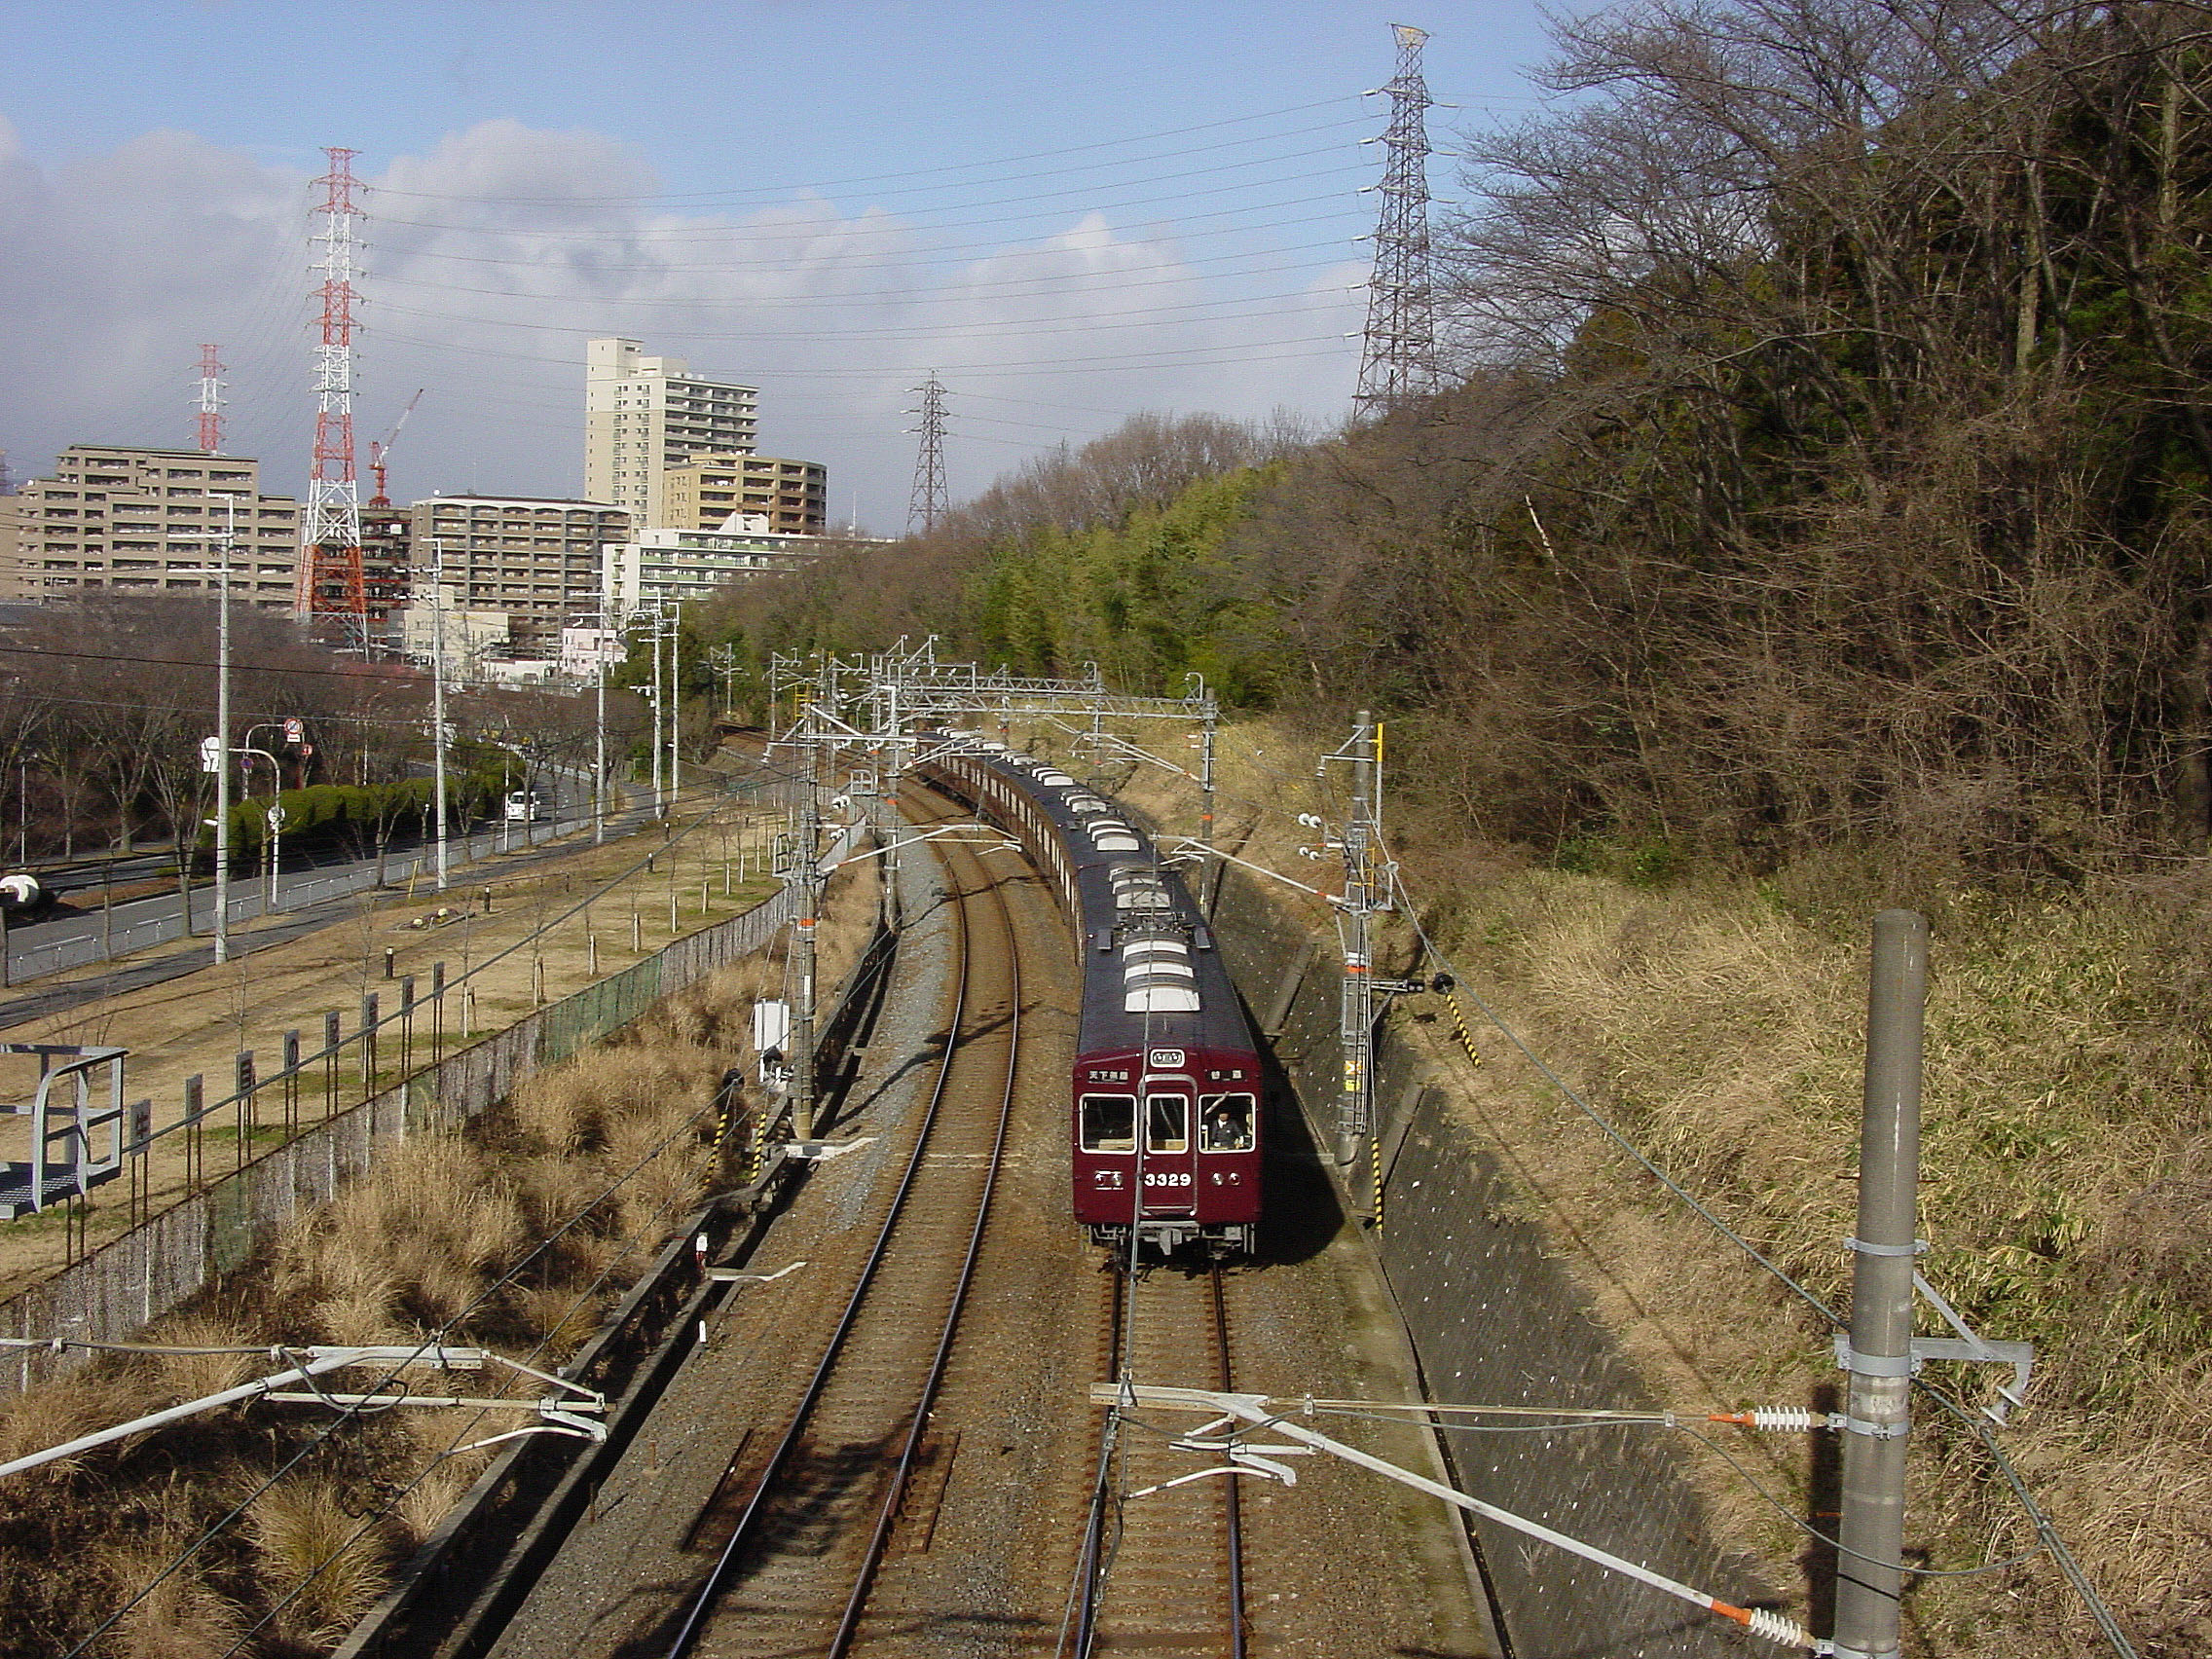 https://upload.wikimedia.org/wikipedia/commons/7/75/Senri_line.JPG